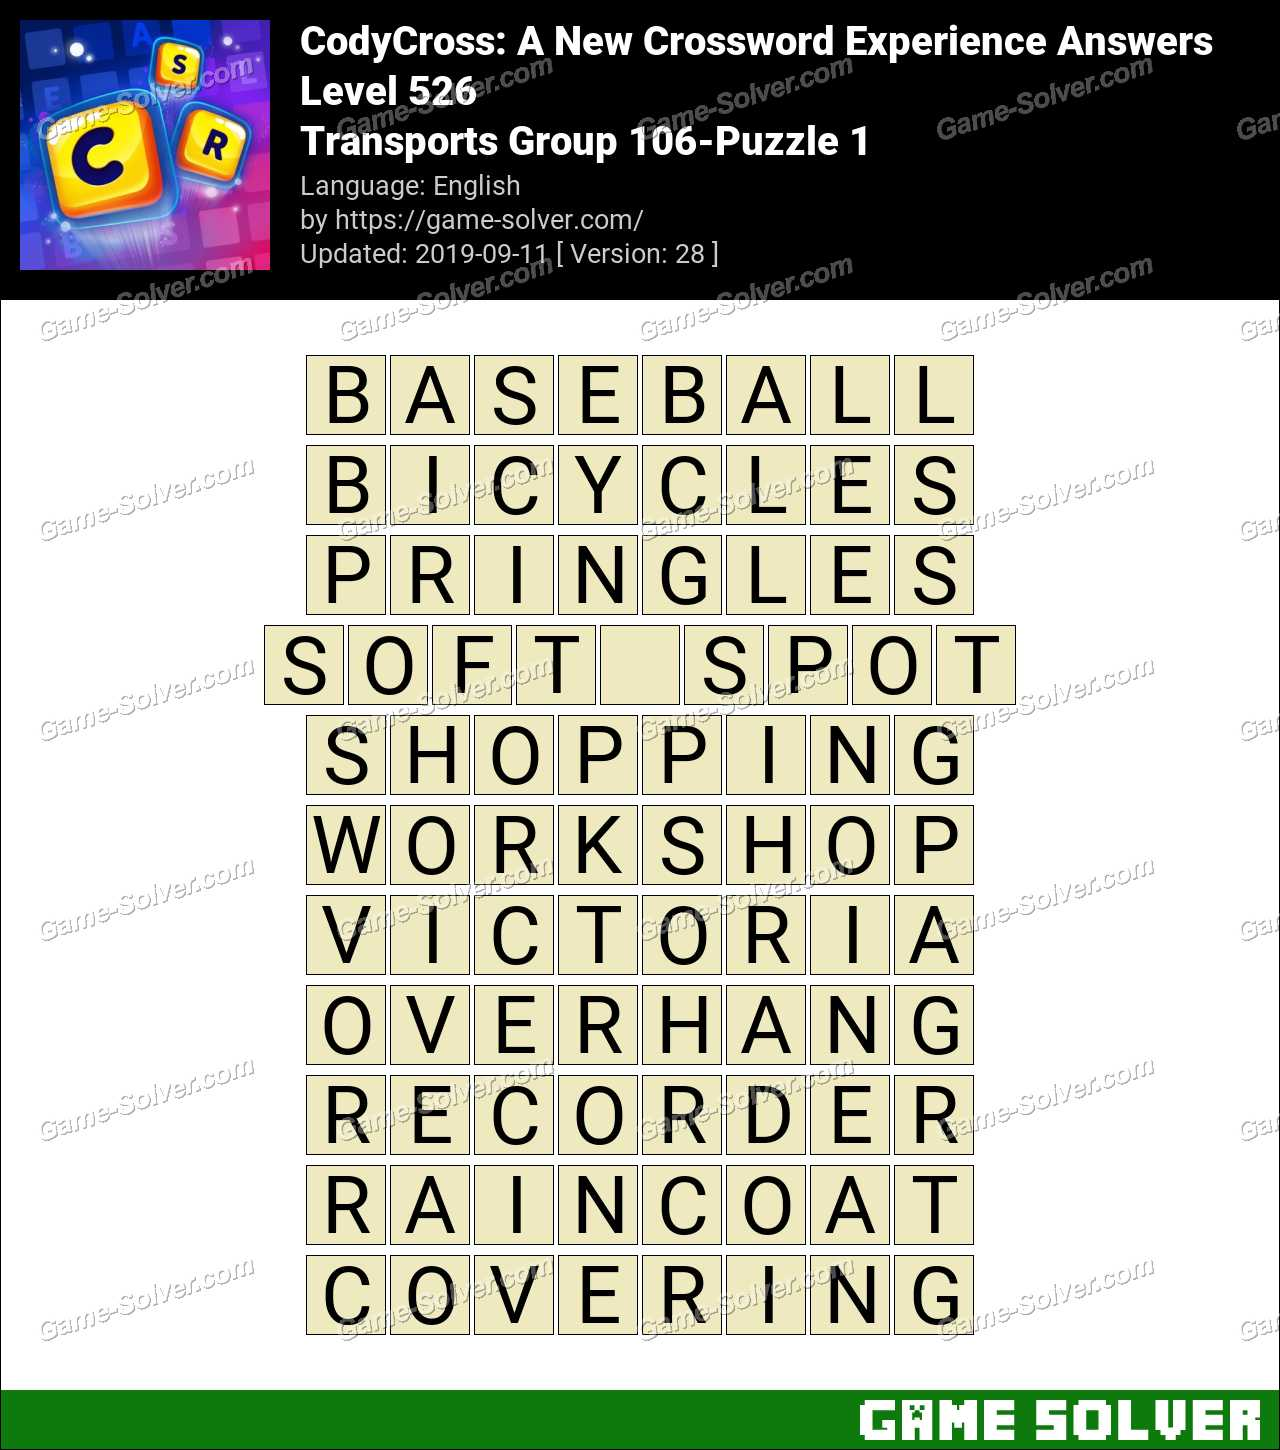 CodyCross Transports Group 106-Puzzle 1 Answers